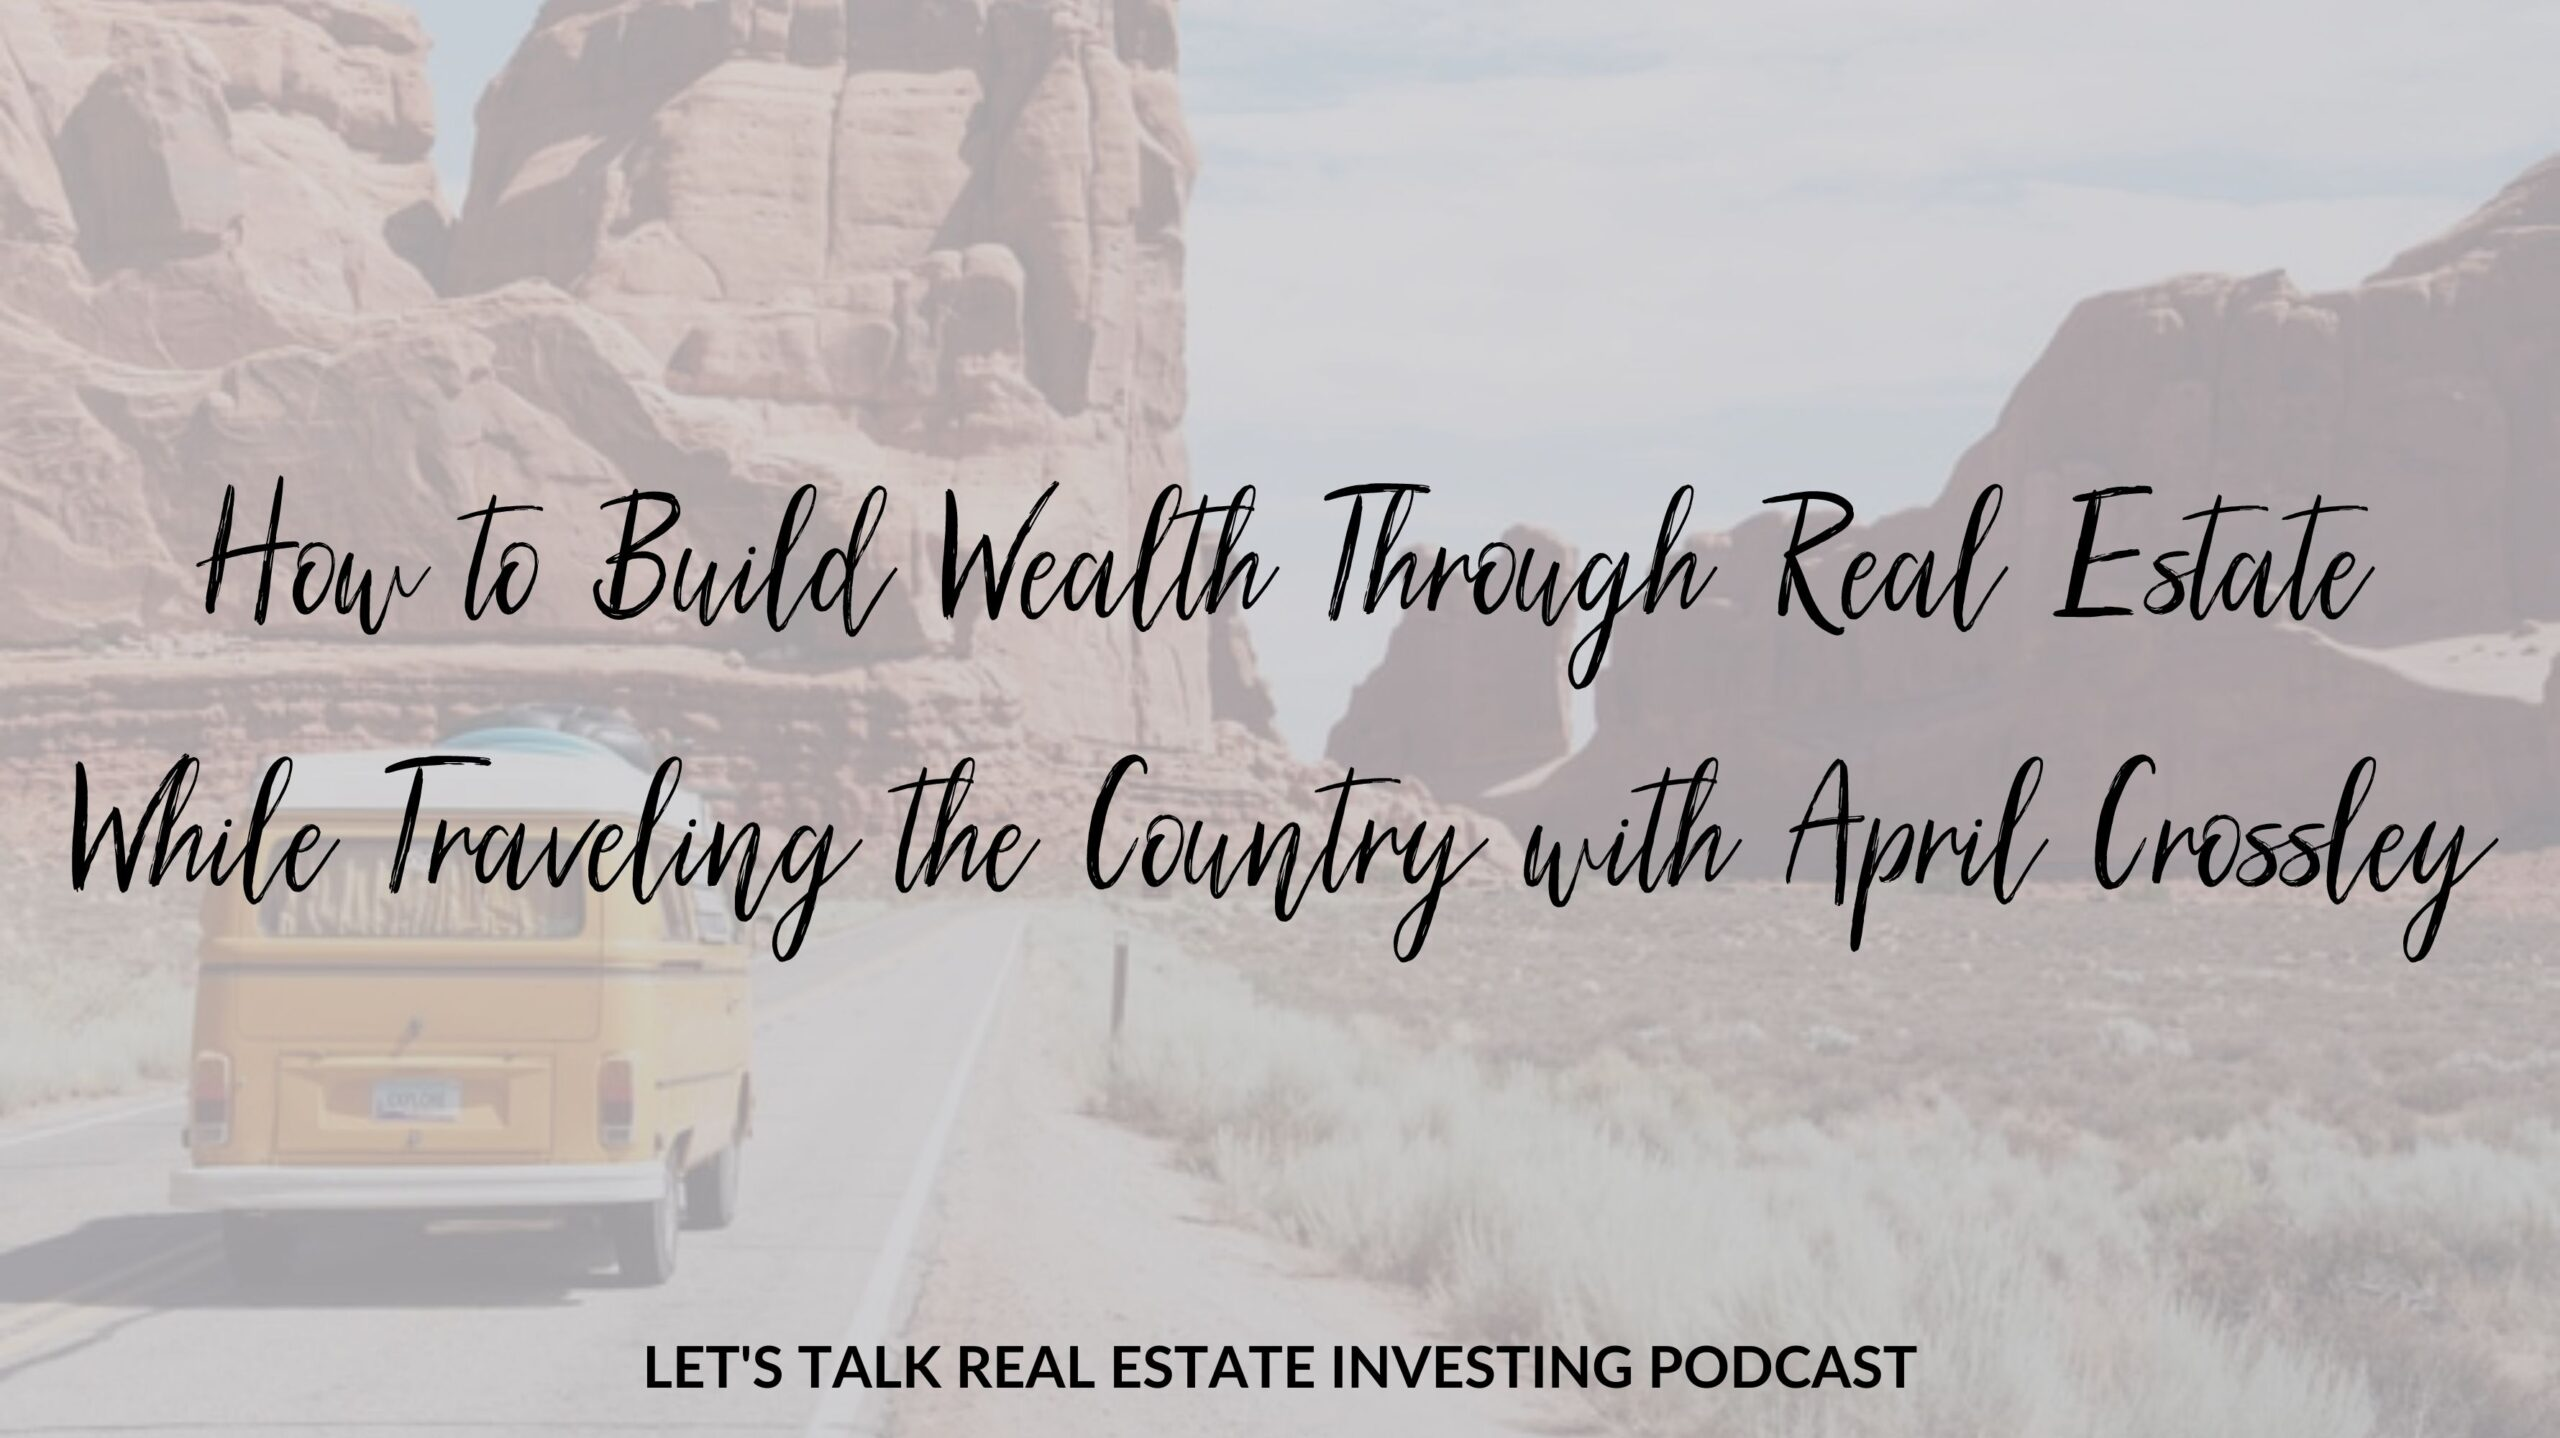 How to Build Wealth Through Real Estate While Traveling the Country with April Crossley